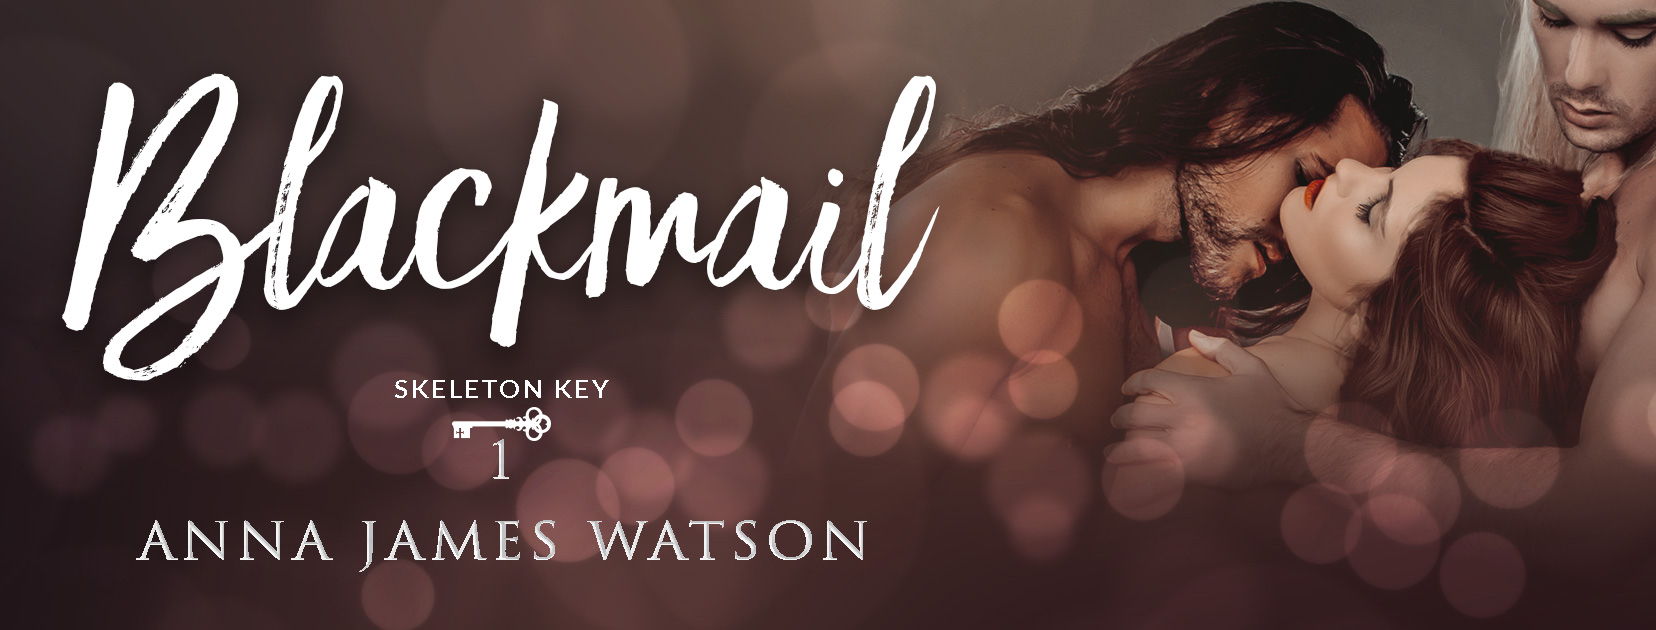 Release and review for Blackmail by Anna James Watson